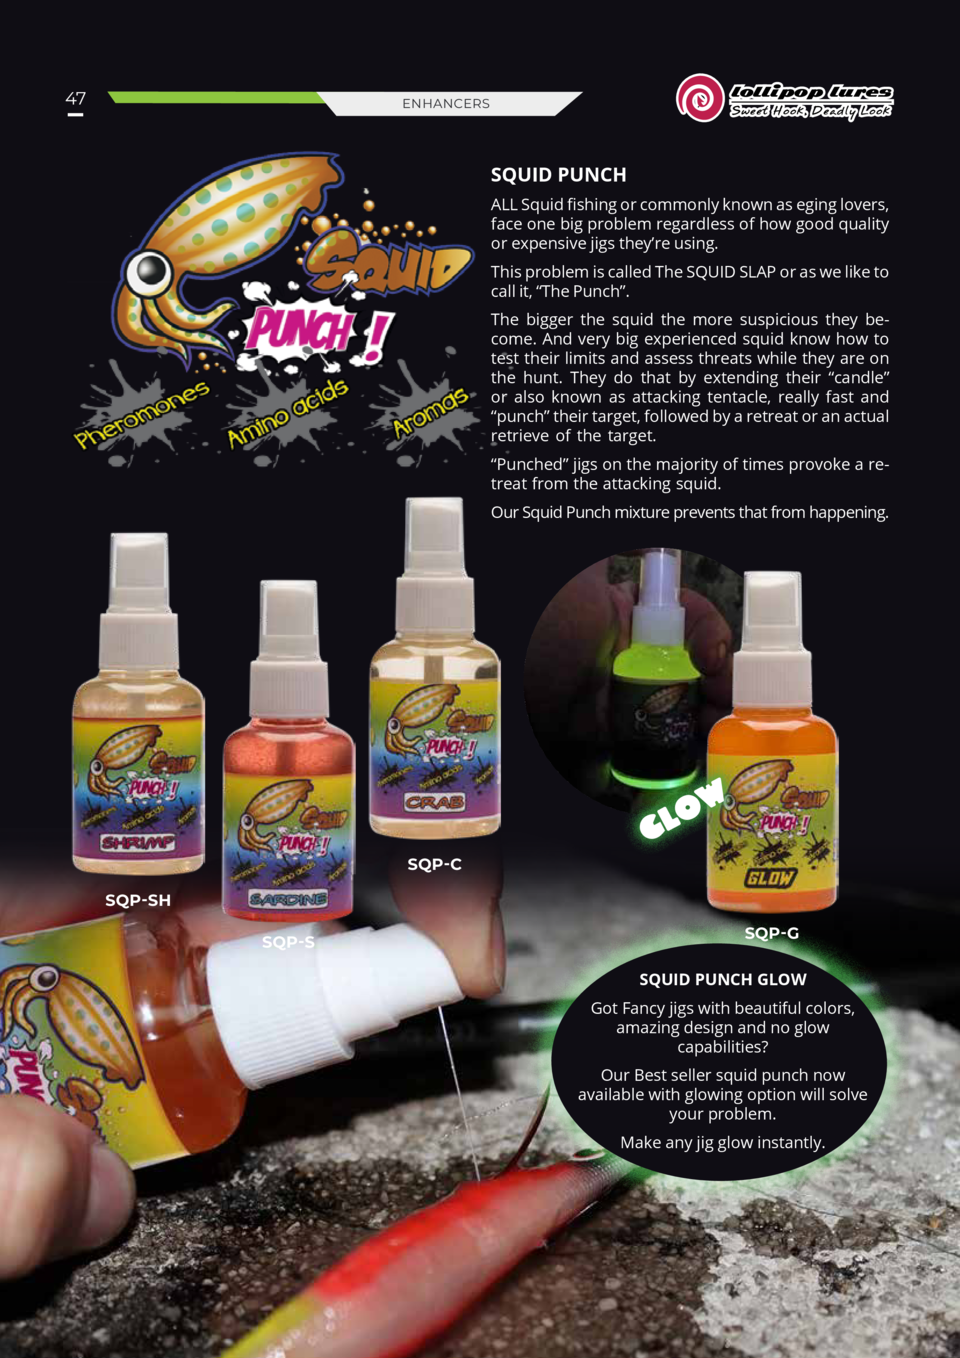 LOLLIPOP SQUID PUNCH FISH ATTRACTANT ALL SQUID FISHING